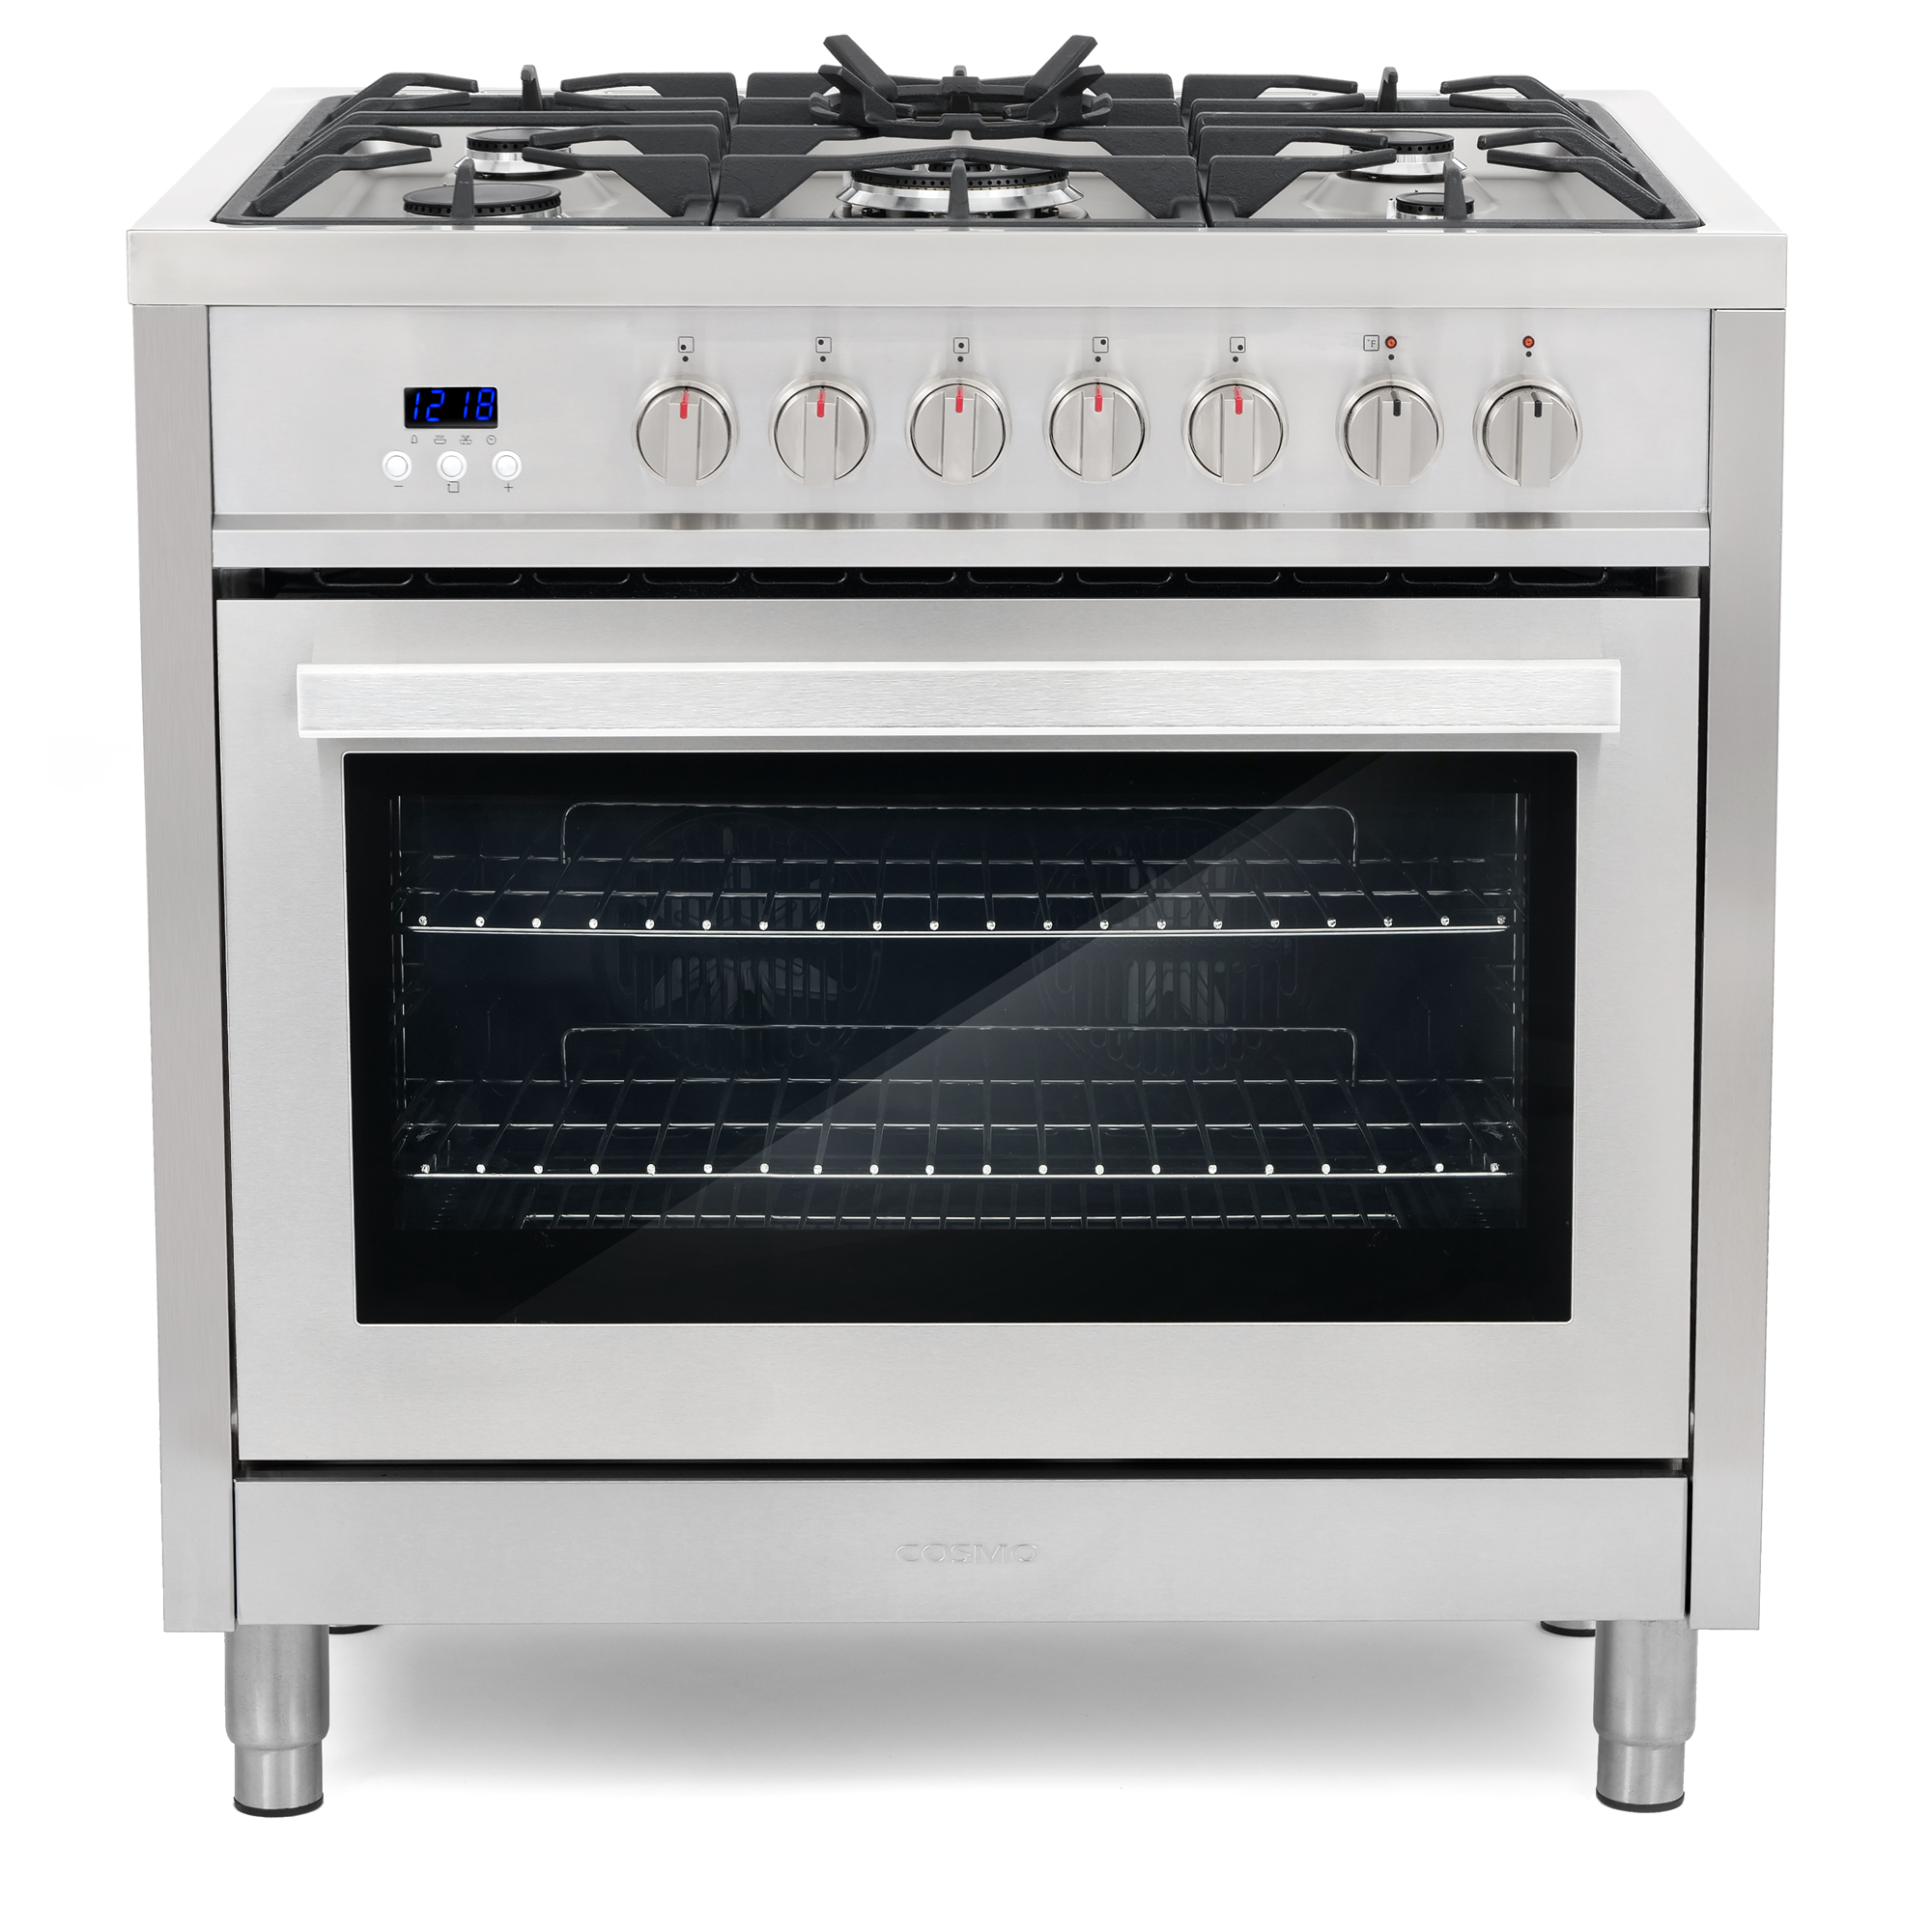 """COS-F965 36"""" Dual Fuel Range With 5 Sealed Gas Burners & Turbo True European Convection Oven"""